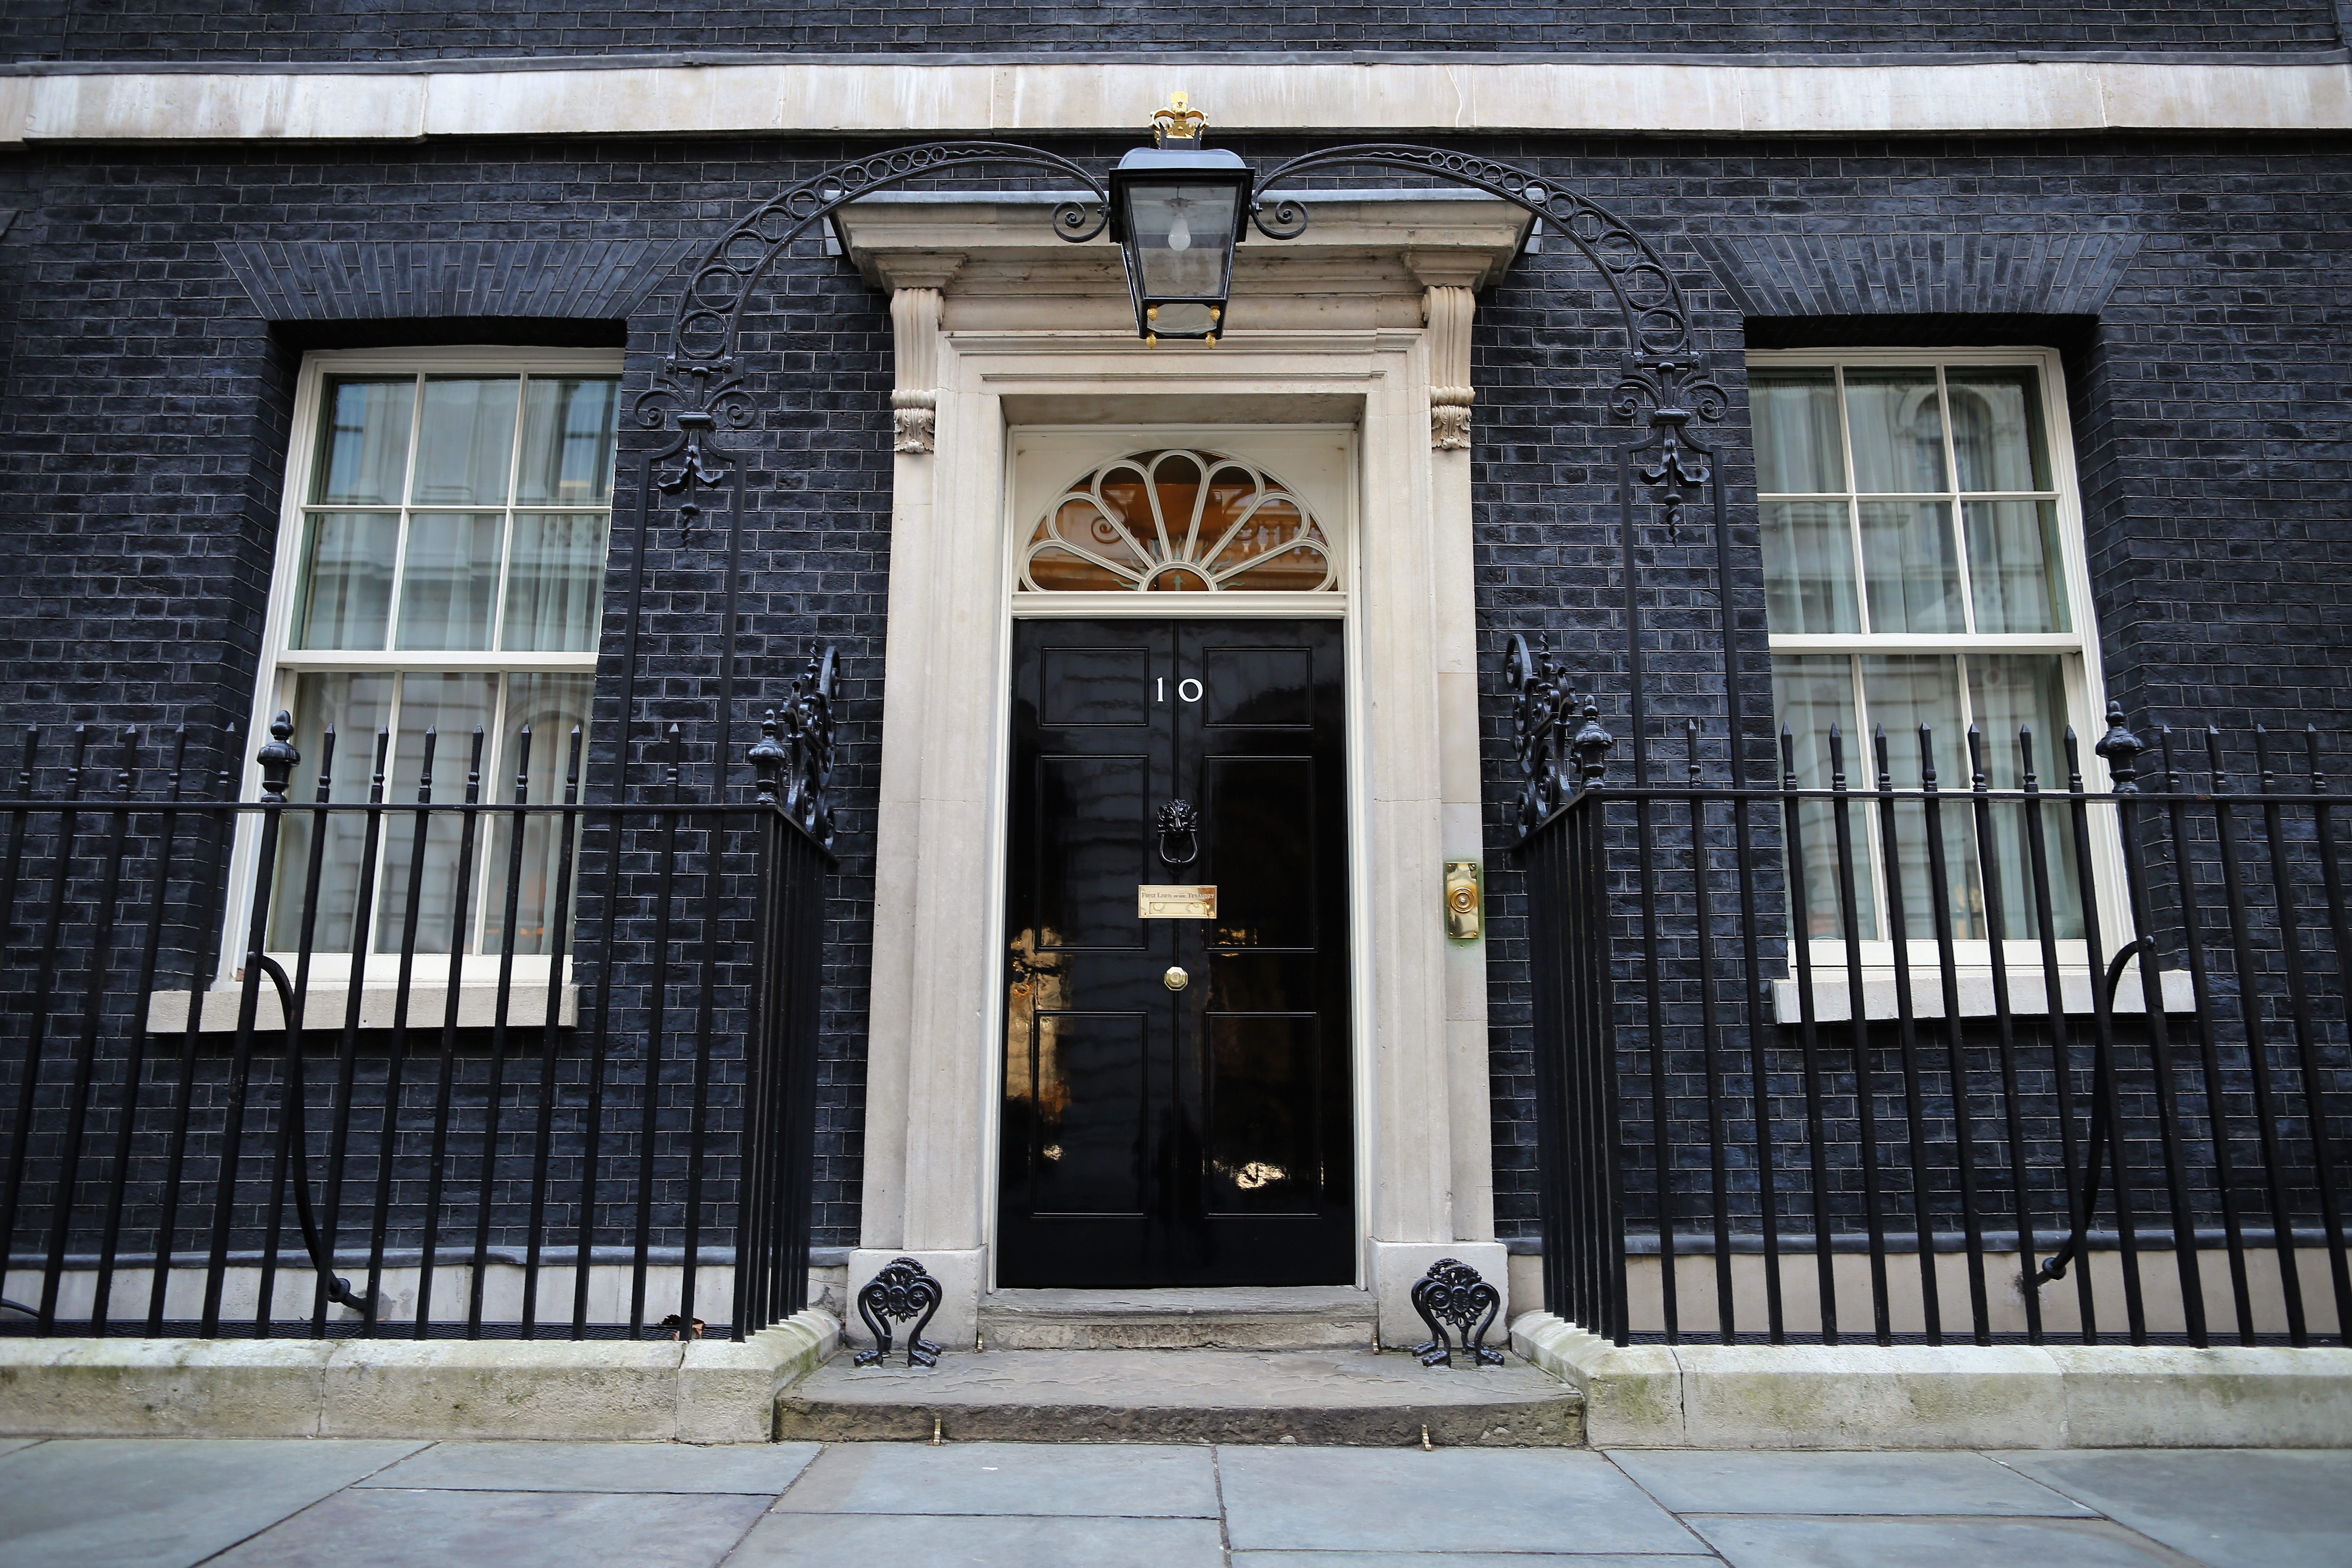 A general view of Number 10 Downing Street's front door.